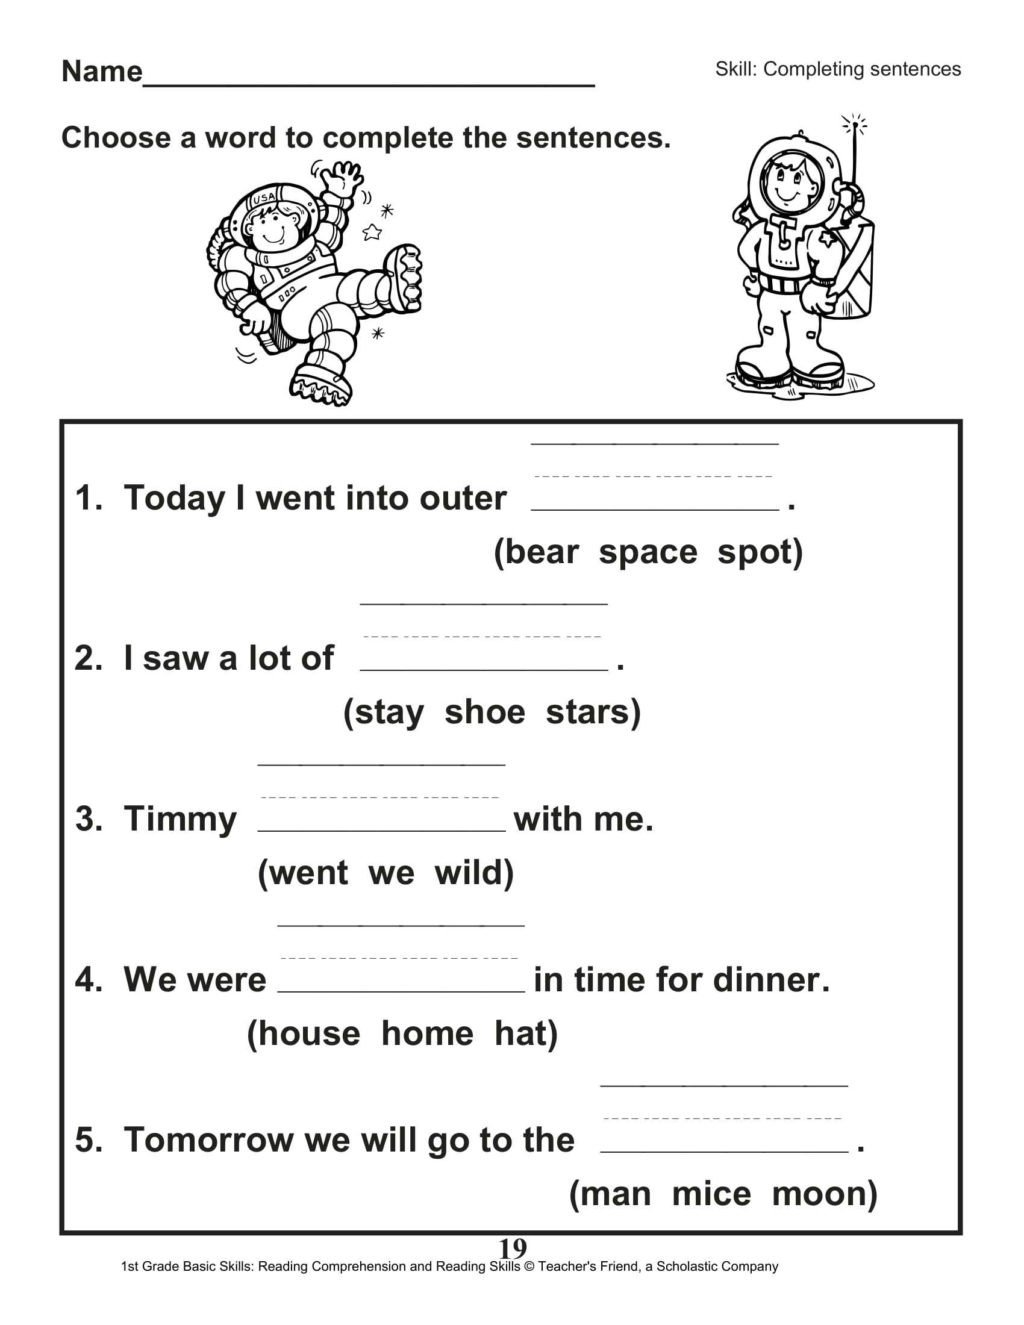 Complete Sentences Worksheets 1st Grade Worksheet 1st Grade Worksheet Reading for Educations